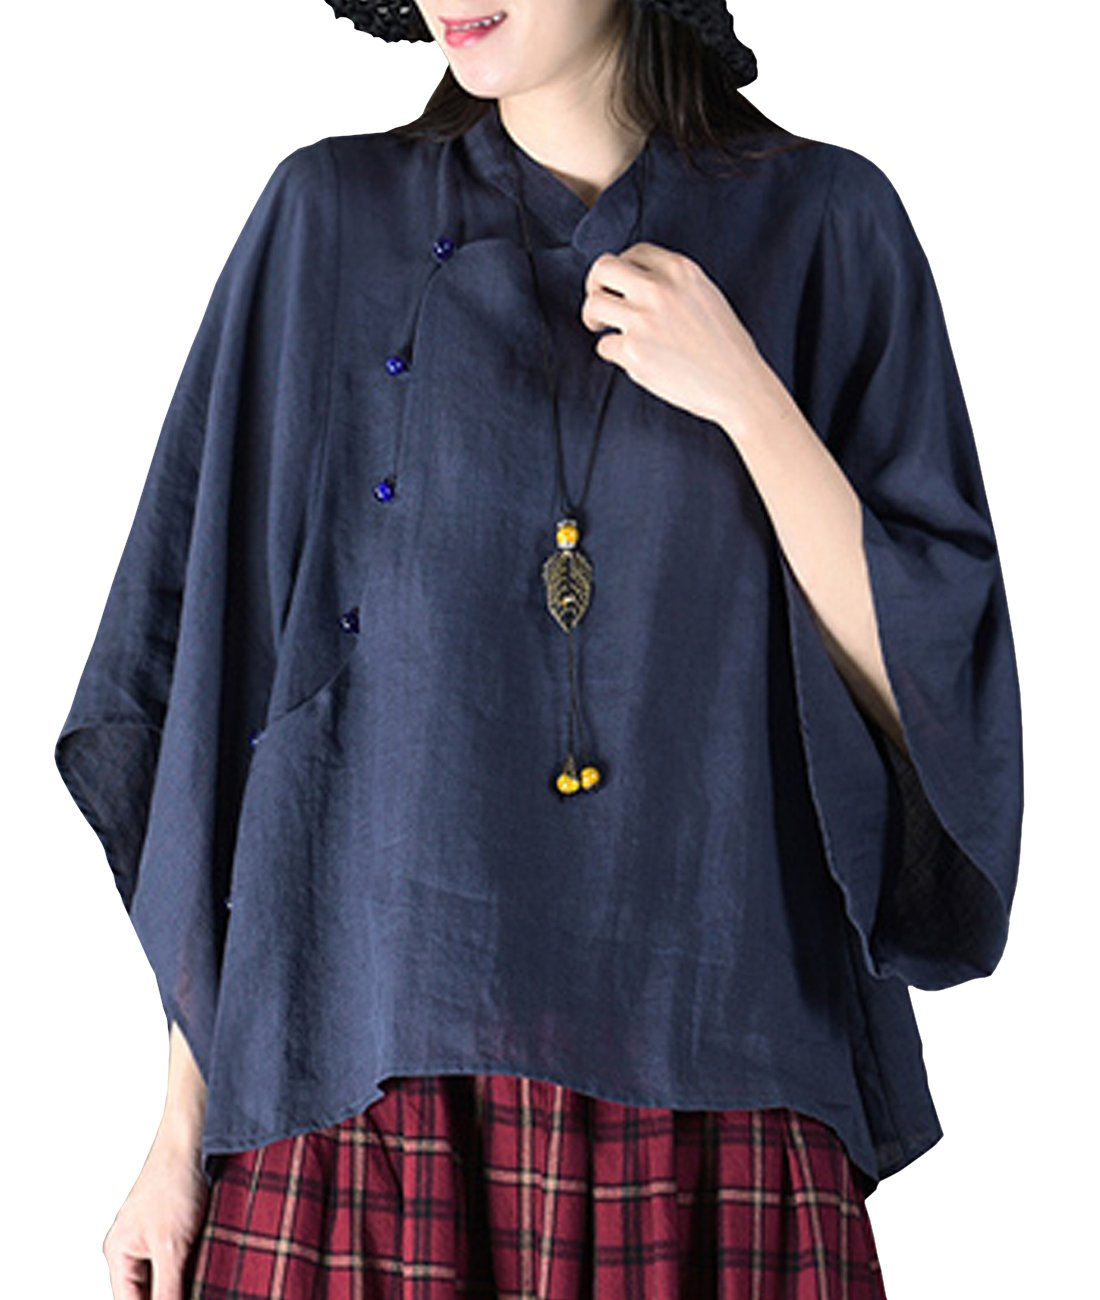 YESNO Y75 Women Casual Loose Fit Blouse Shirt 100% Linen Chinese Traditional Frogs Retro Style Puff Sleeve